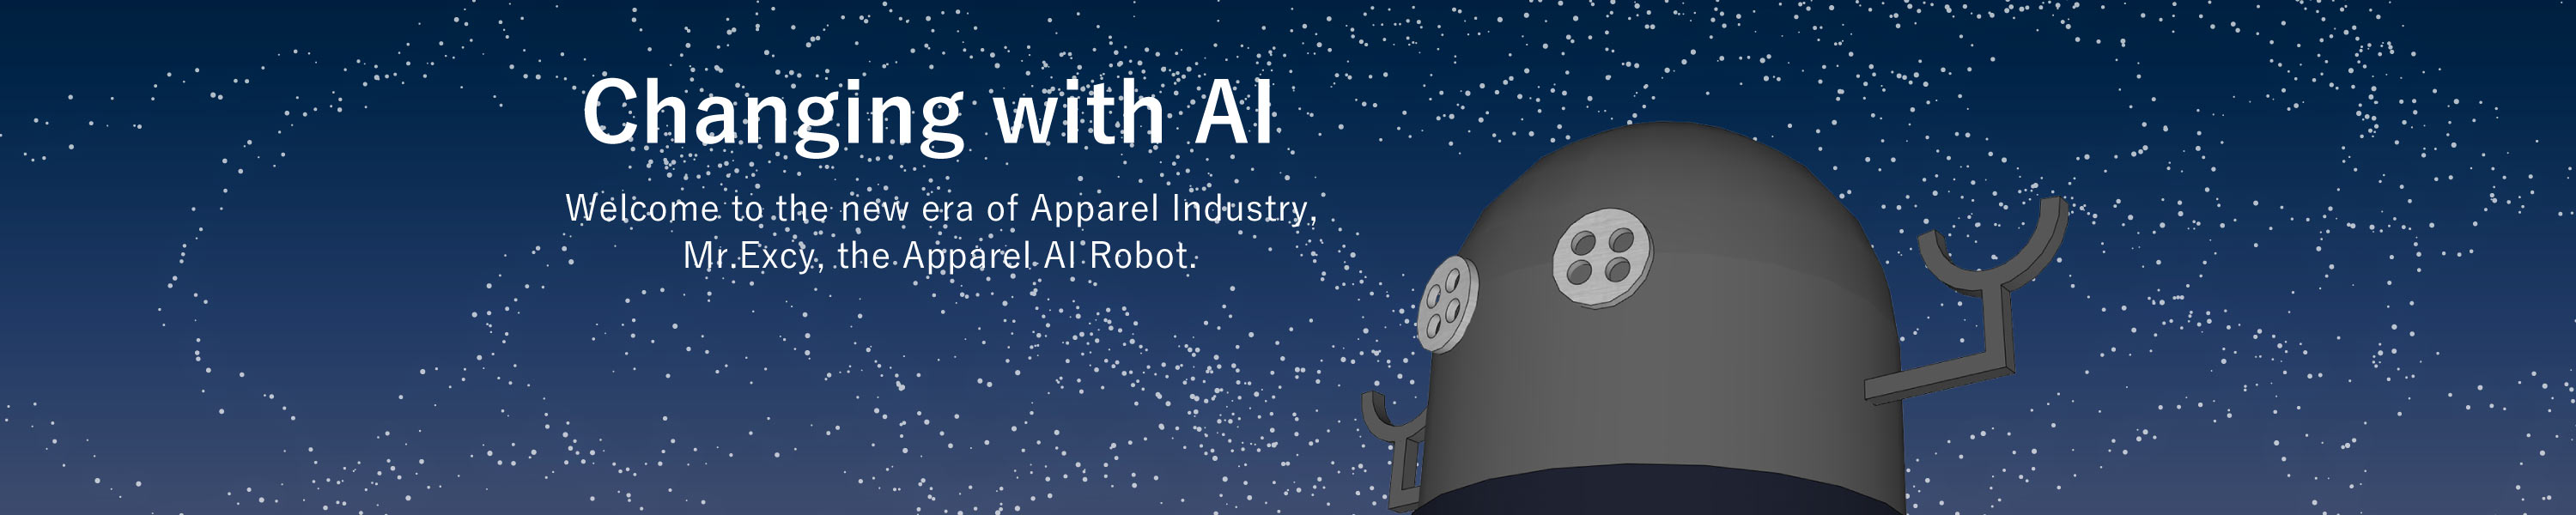 Apparel AI Robot Mr. Excy Revealed